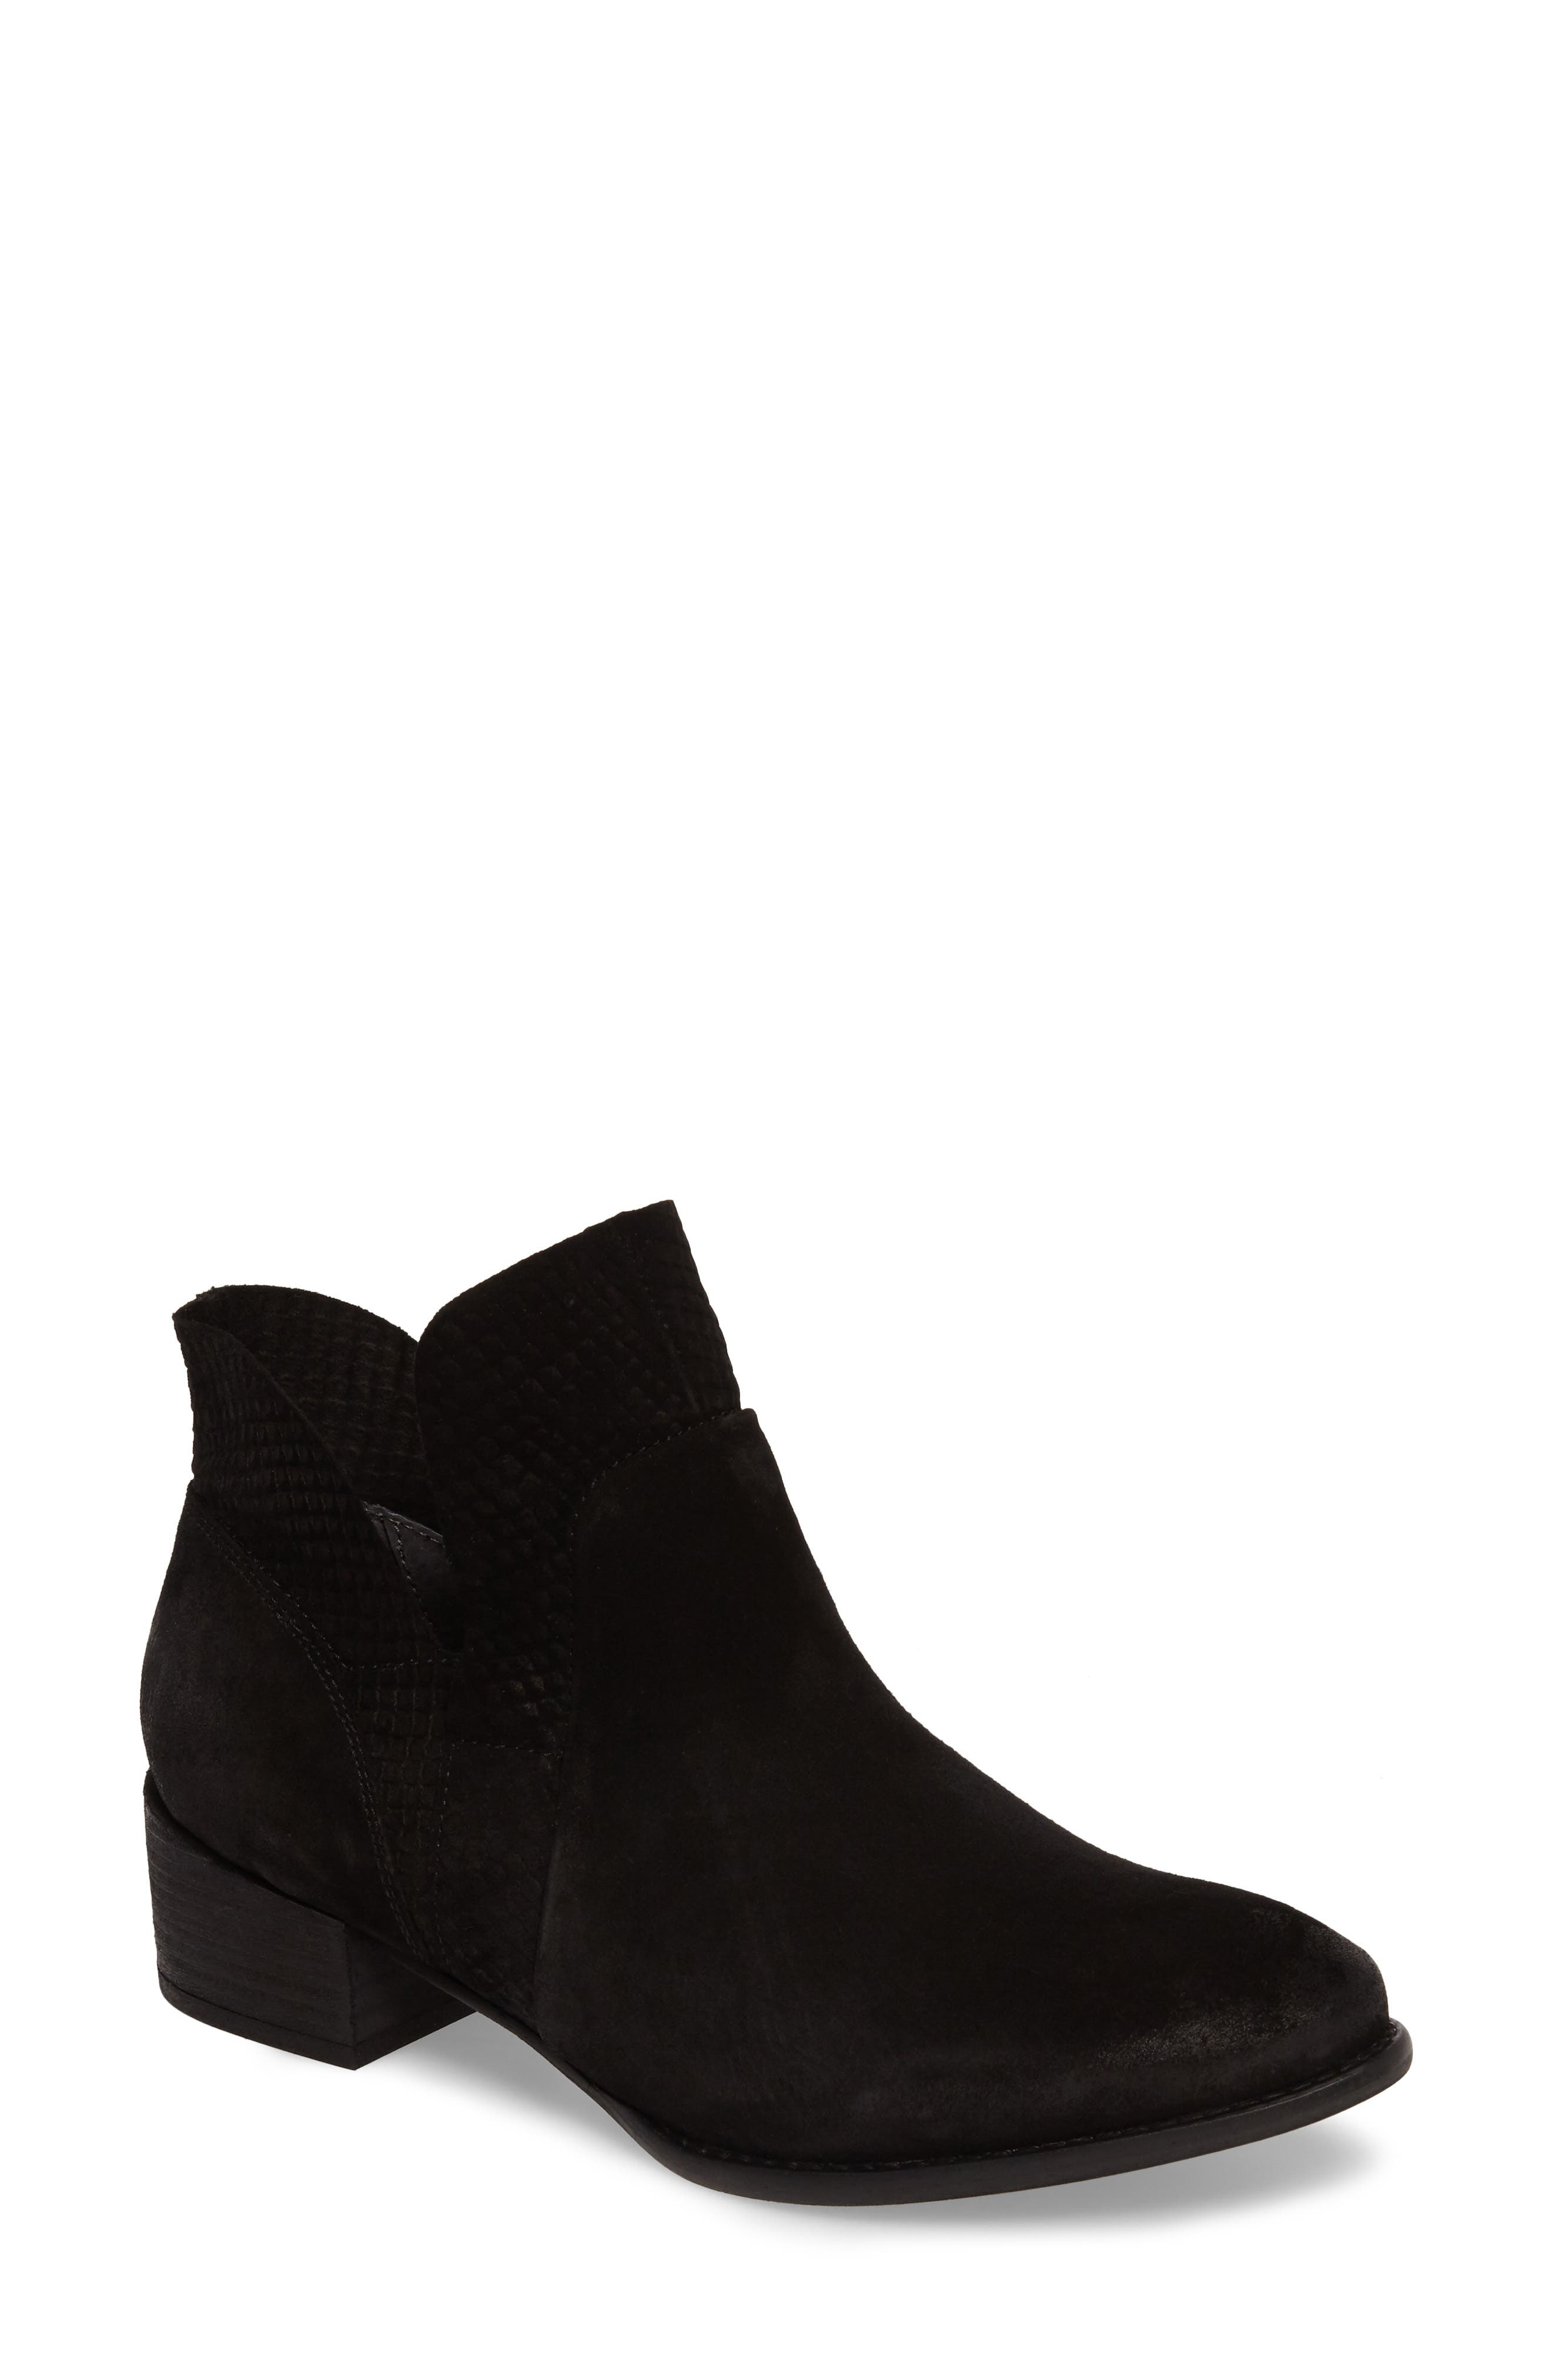 Dwelling Bootie,                         Main,                         color, 001